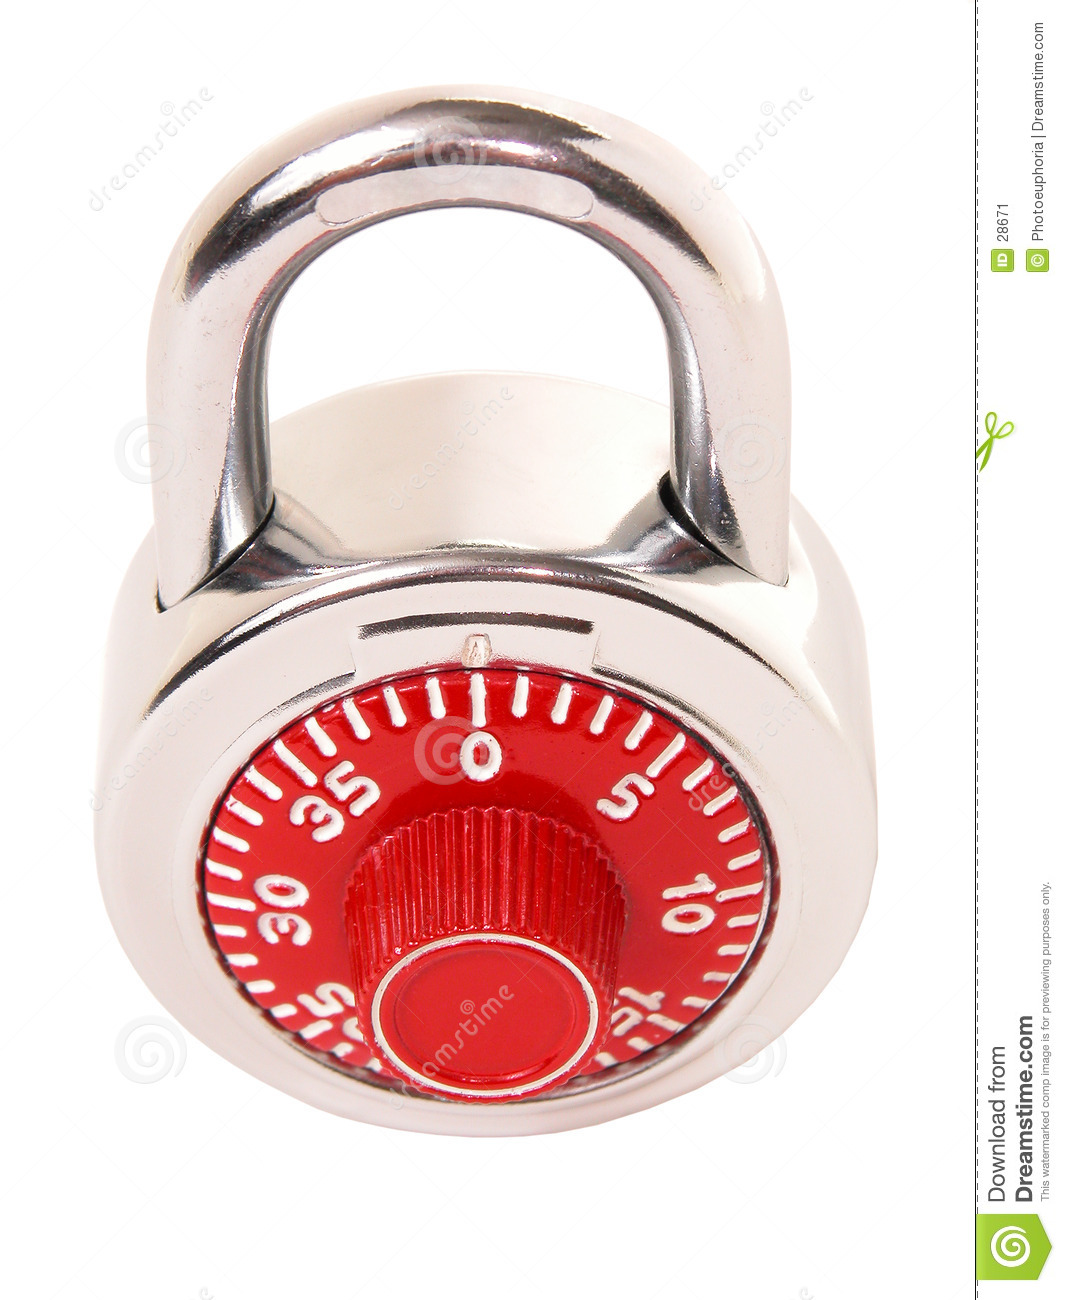 School & Office: Combination Lock